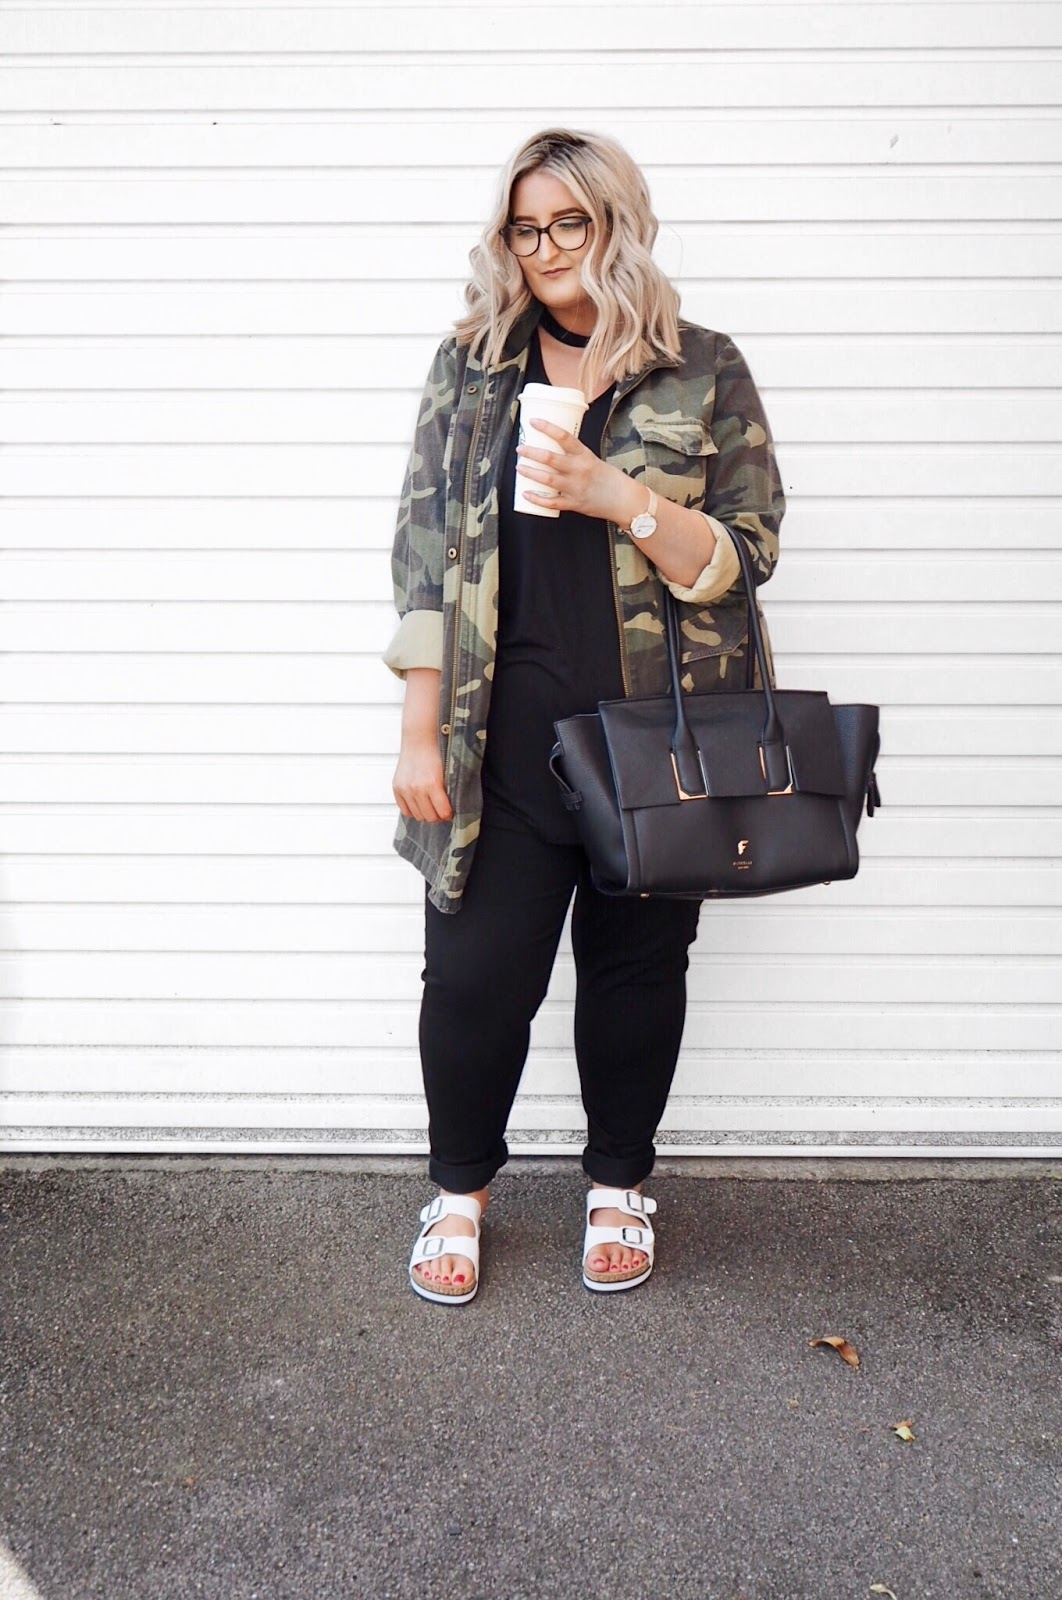 Plus size blogger wearing Yours Clothing camo jacket, choker top, black skinny jeans, white cork sandals, with a Starbucks and a handbag, against a white garage background